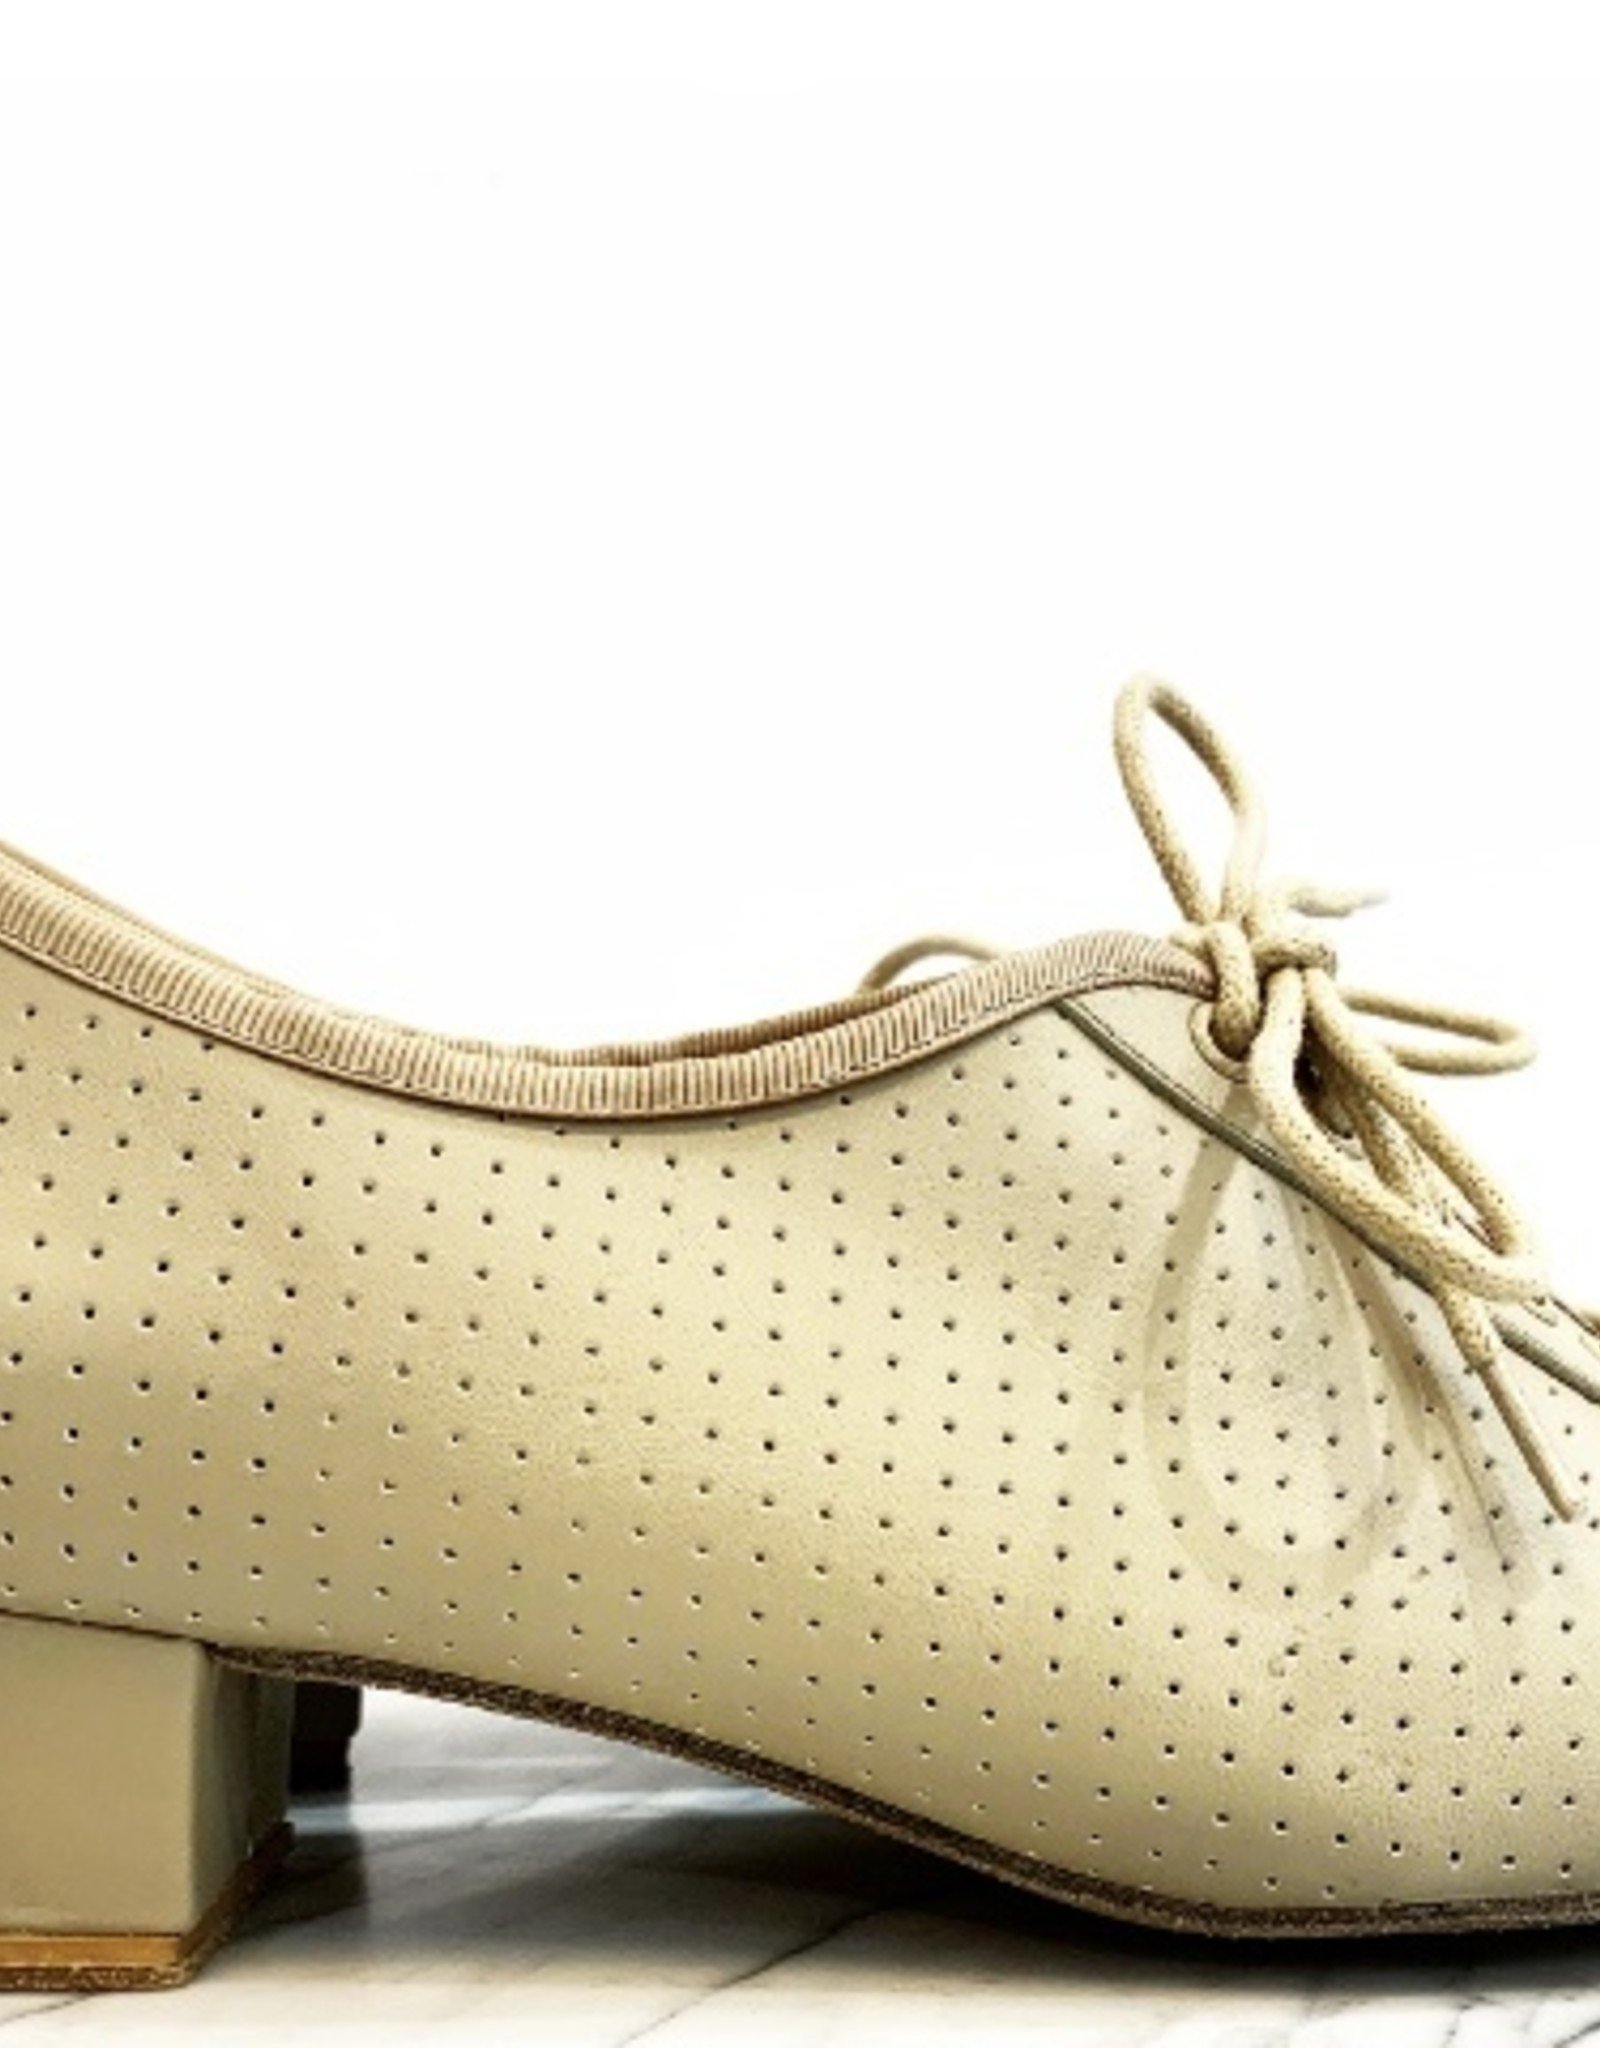 ANGELO LUZIO PERCED BALLROOM SHOES (103AL)